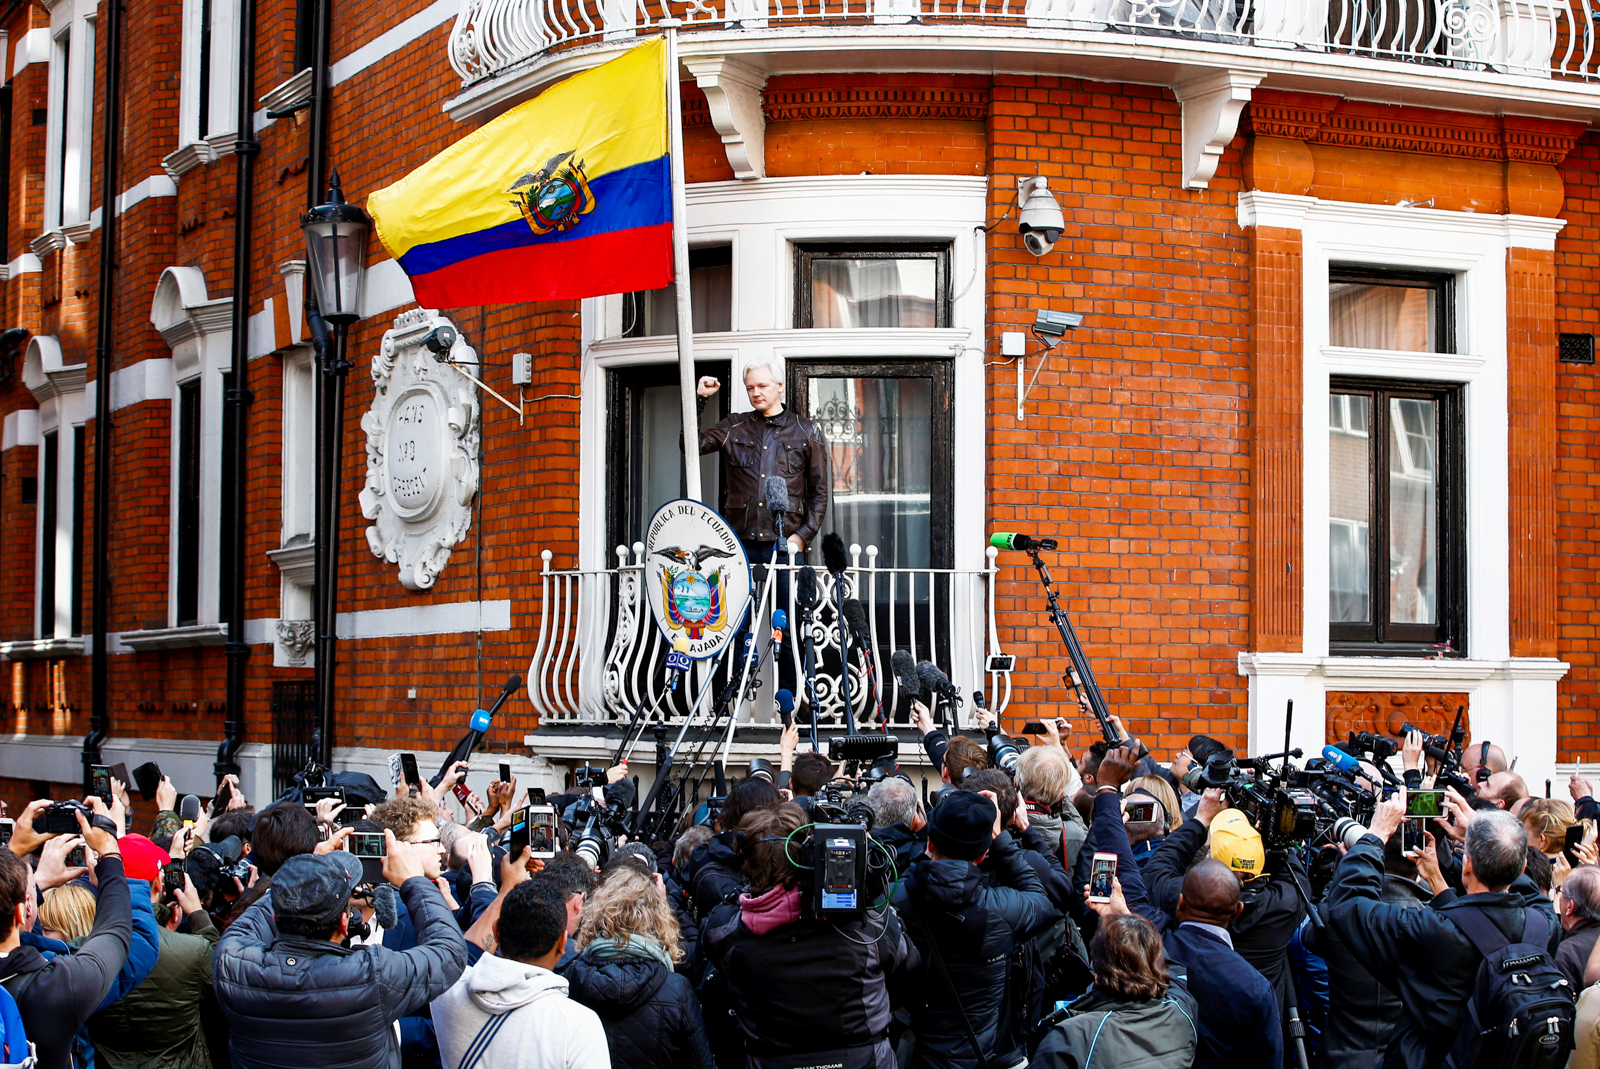 Julian Assange speaks to media outside the Ecuadorian embassy.